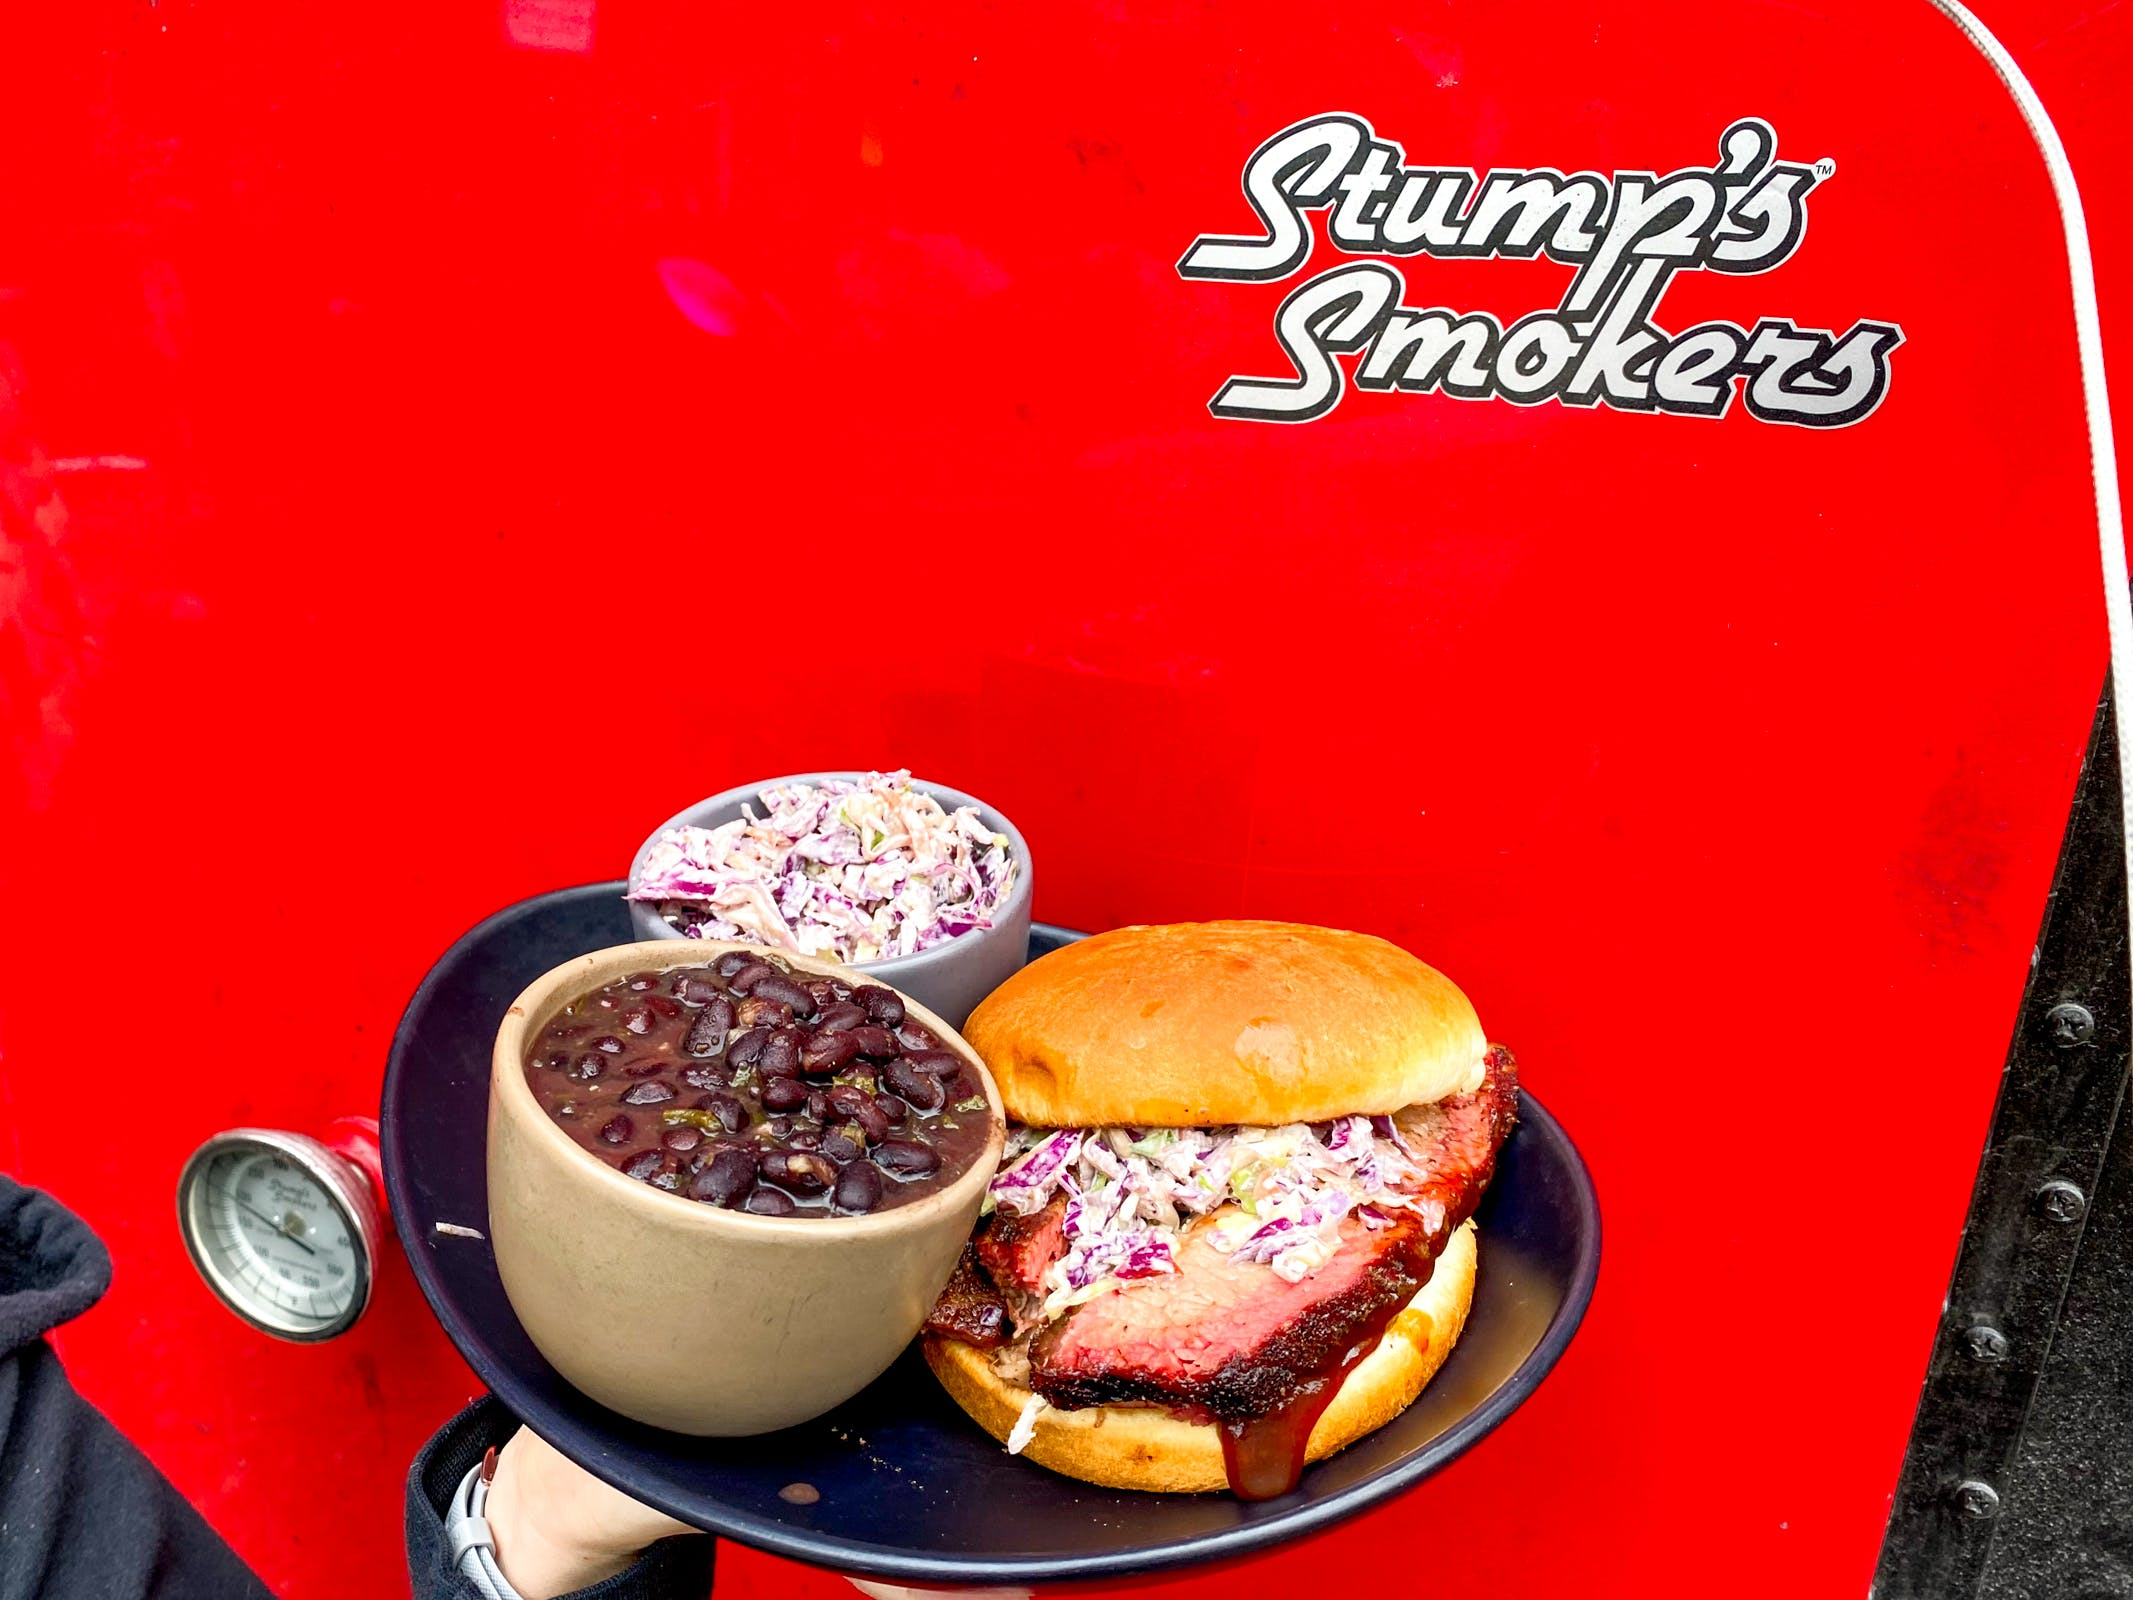 Stump's Smokers